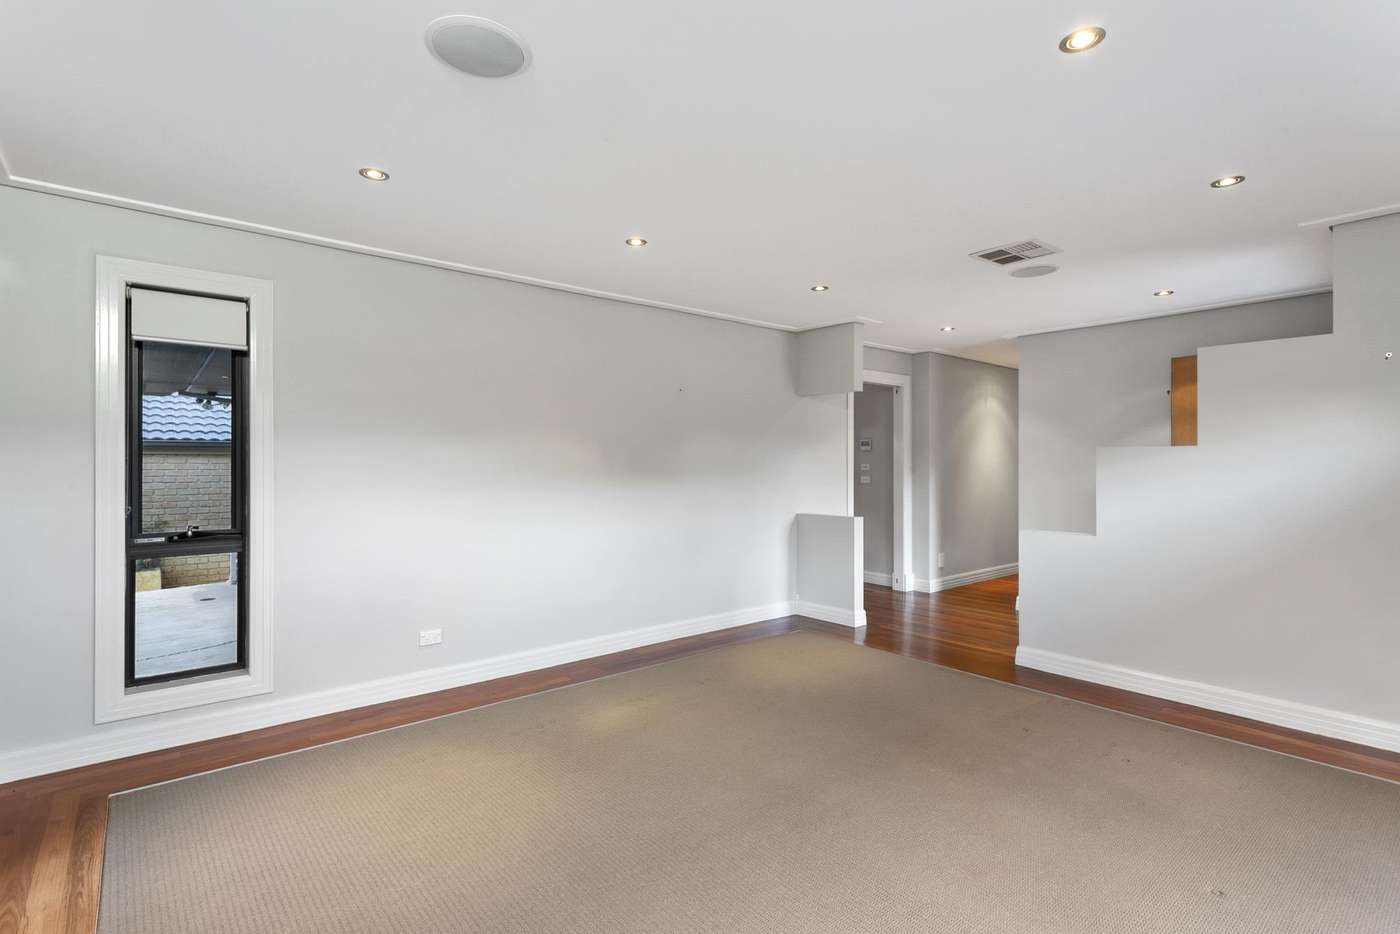 Sixth view of Homely house listing, 22 Renfree Street, Casey ACT 2913